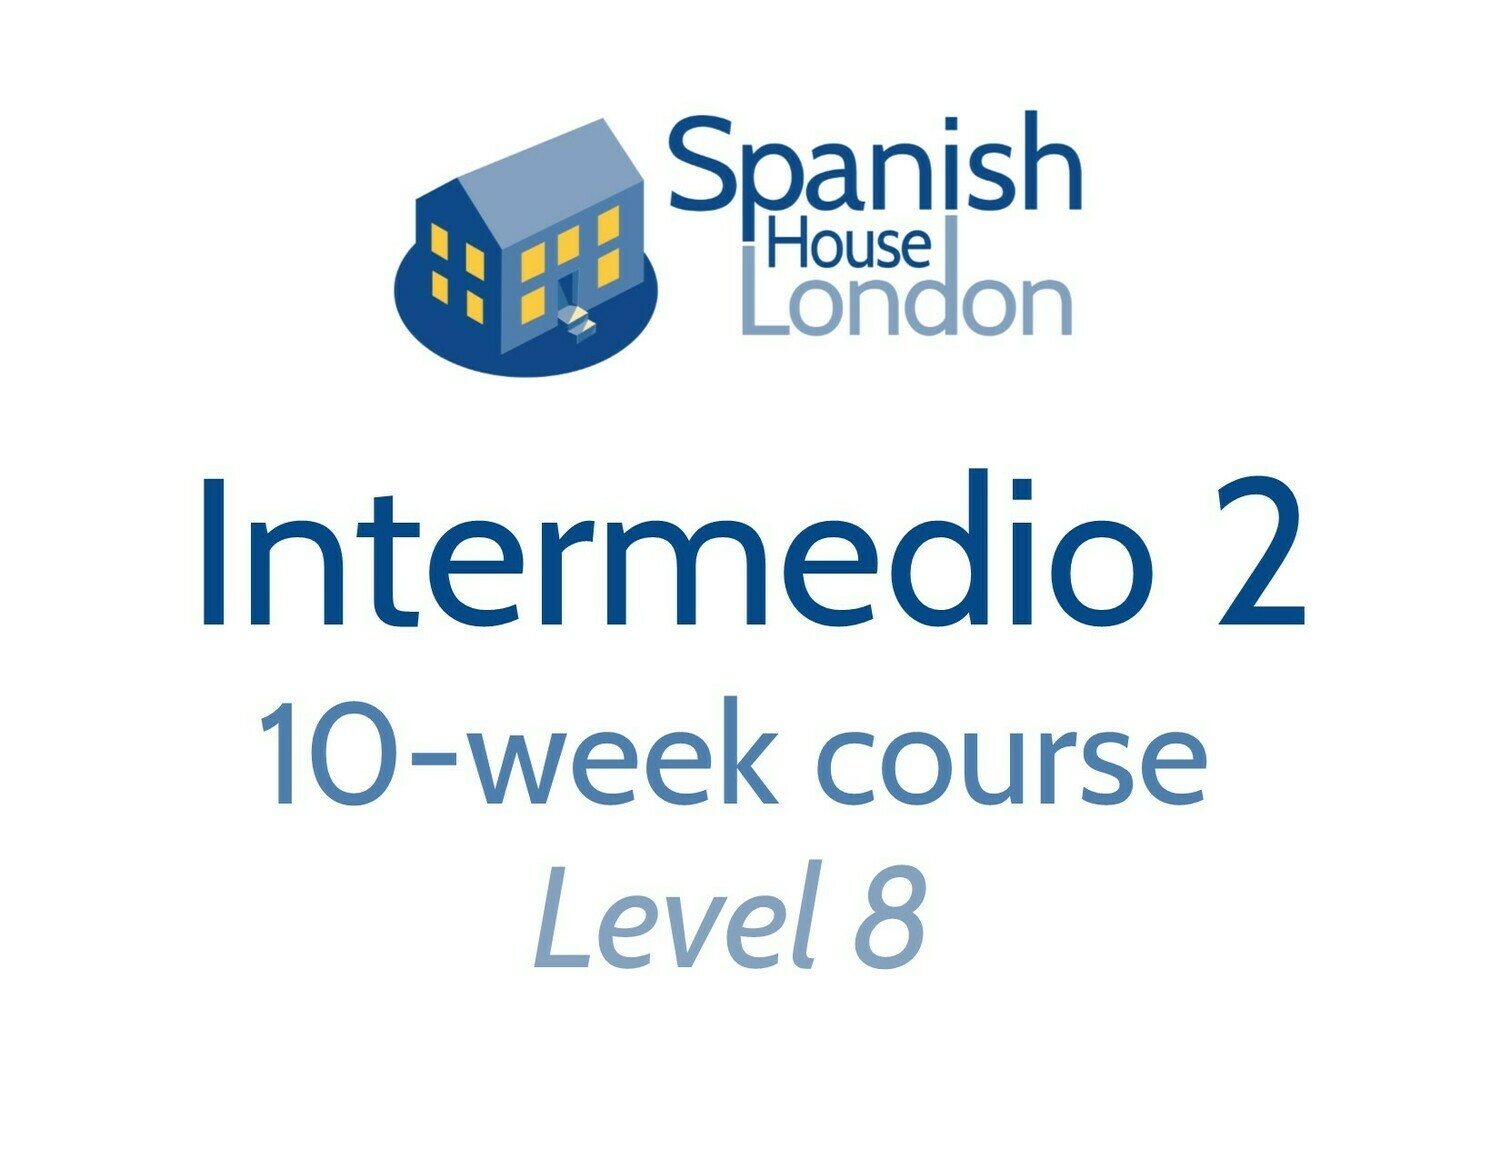 Intermedio 2 Course starting on 14th October at 7.30pm in Euston